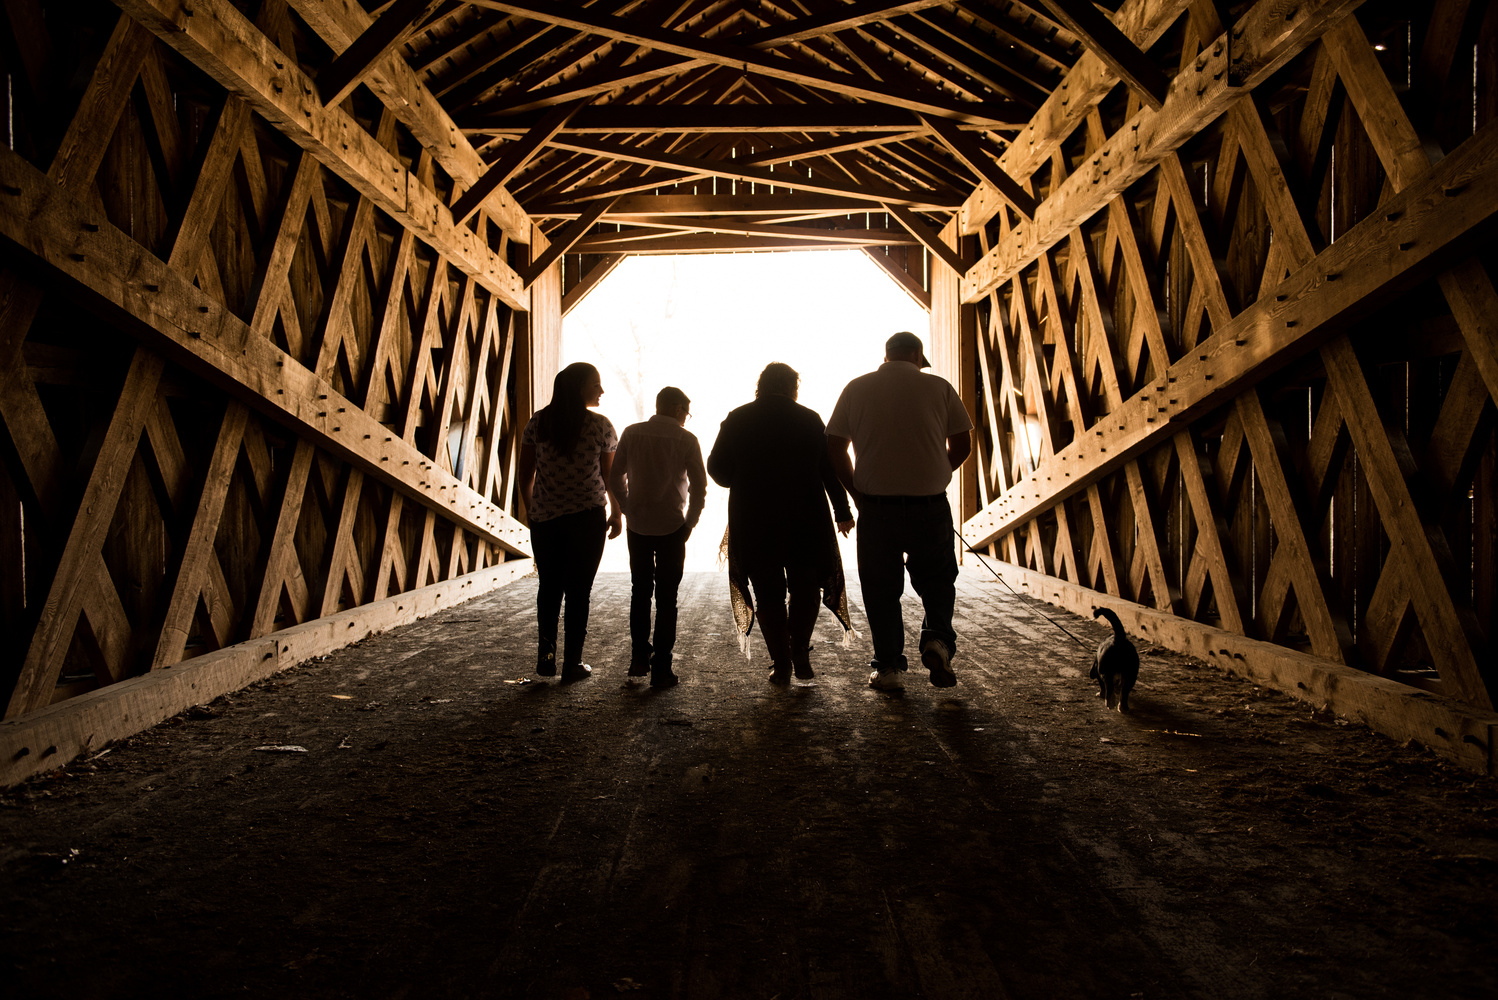 Family Portrait in a Covered Bridge by James Fairfield